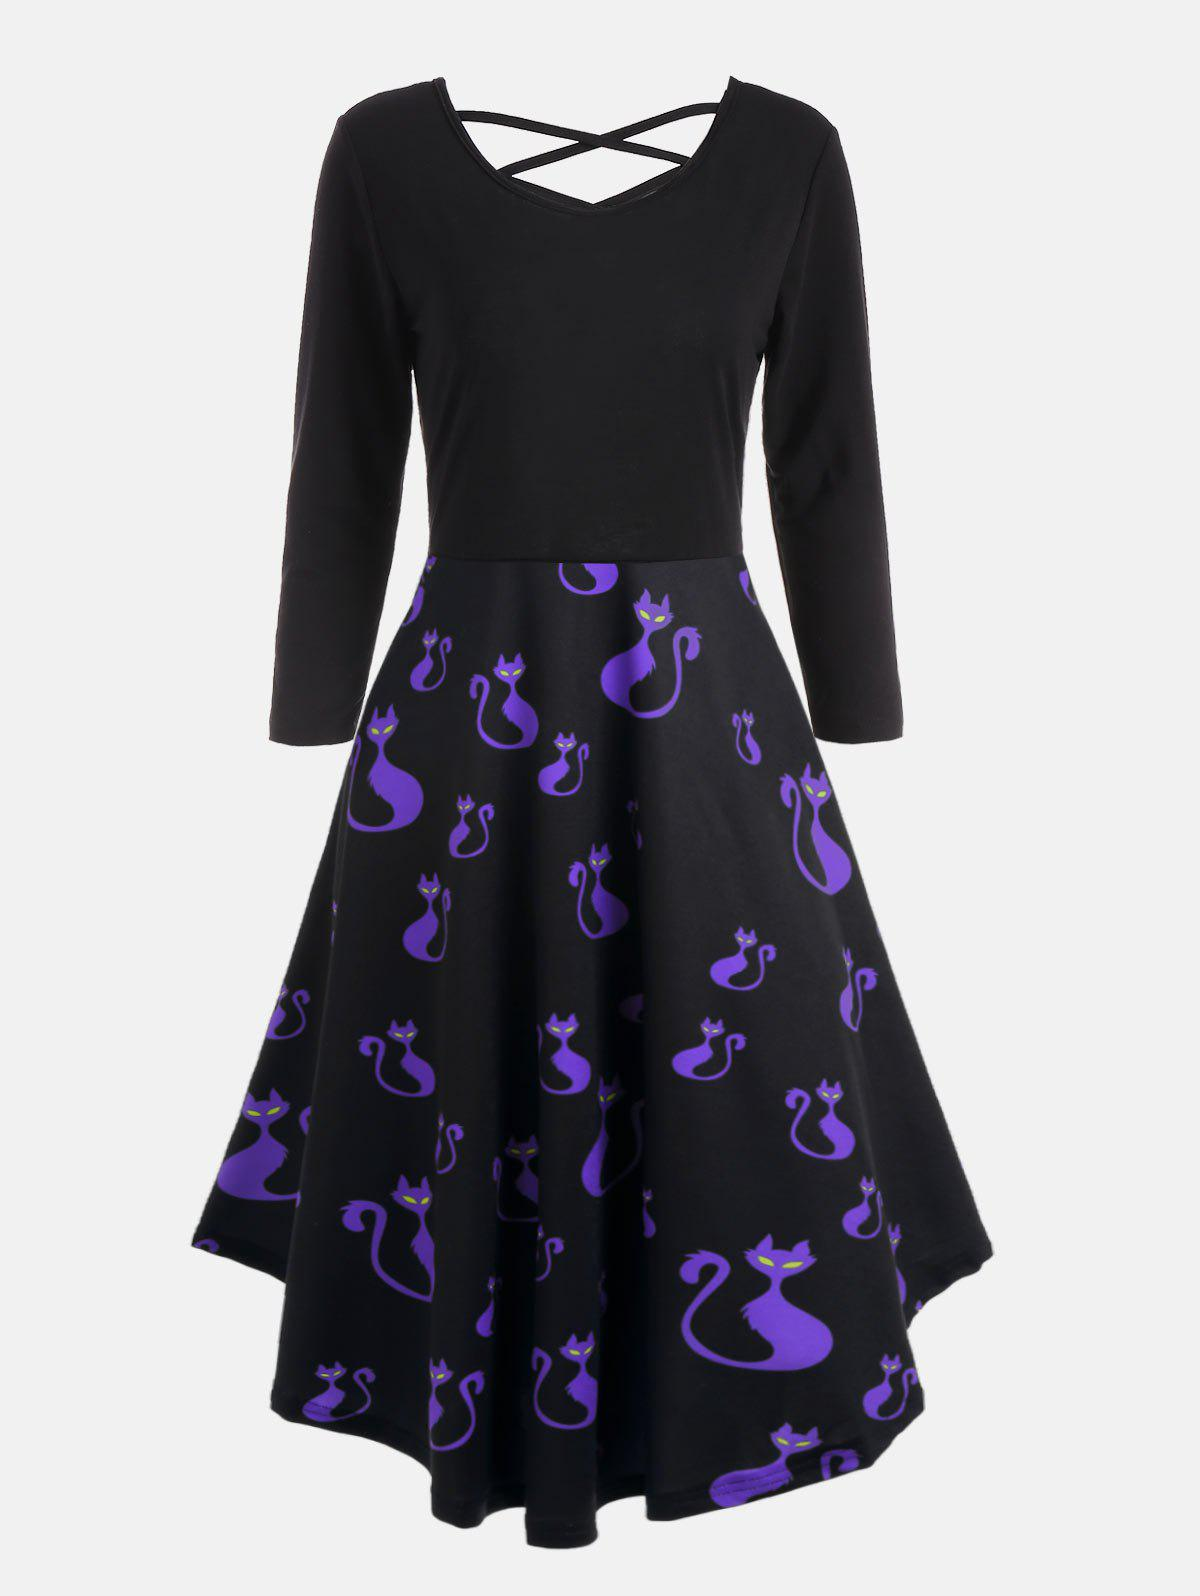 Plus Size Halloween Pumpkins Cats Print Flare DressWOMEN<br><br>Size: XL; Color: BLUE; Style: Casual; Material: Polyester,Spandex; Silhouette: A-Line; Dresses Length: Mid-Calf; Neckline: V-Neck; Sleeve Length: 3/4 Length Sleeves; Waist: High Waisted; Embellishment: Criss-Cross; Pattern Type: Print; Elasticity: Elastic; With Belt: No; Season: Fall,Spring; Weight: 0.4800kg; Package Contents: 1 x Dress;